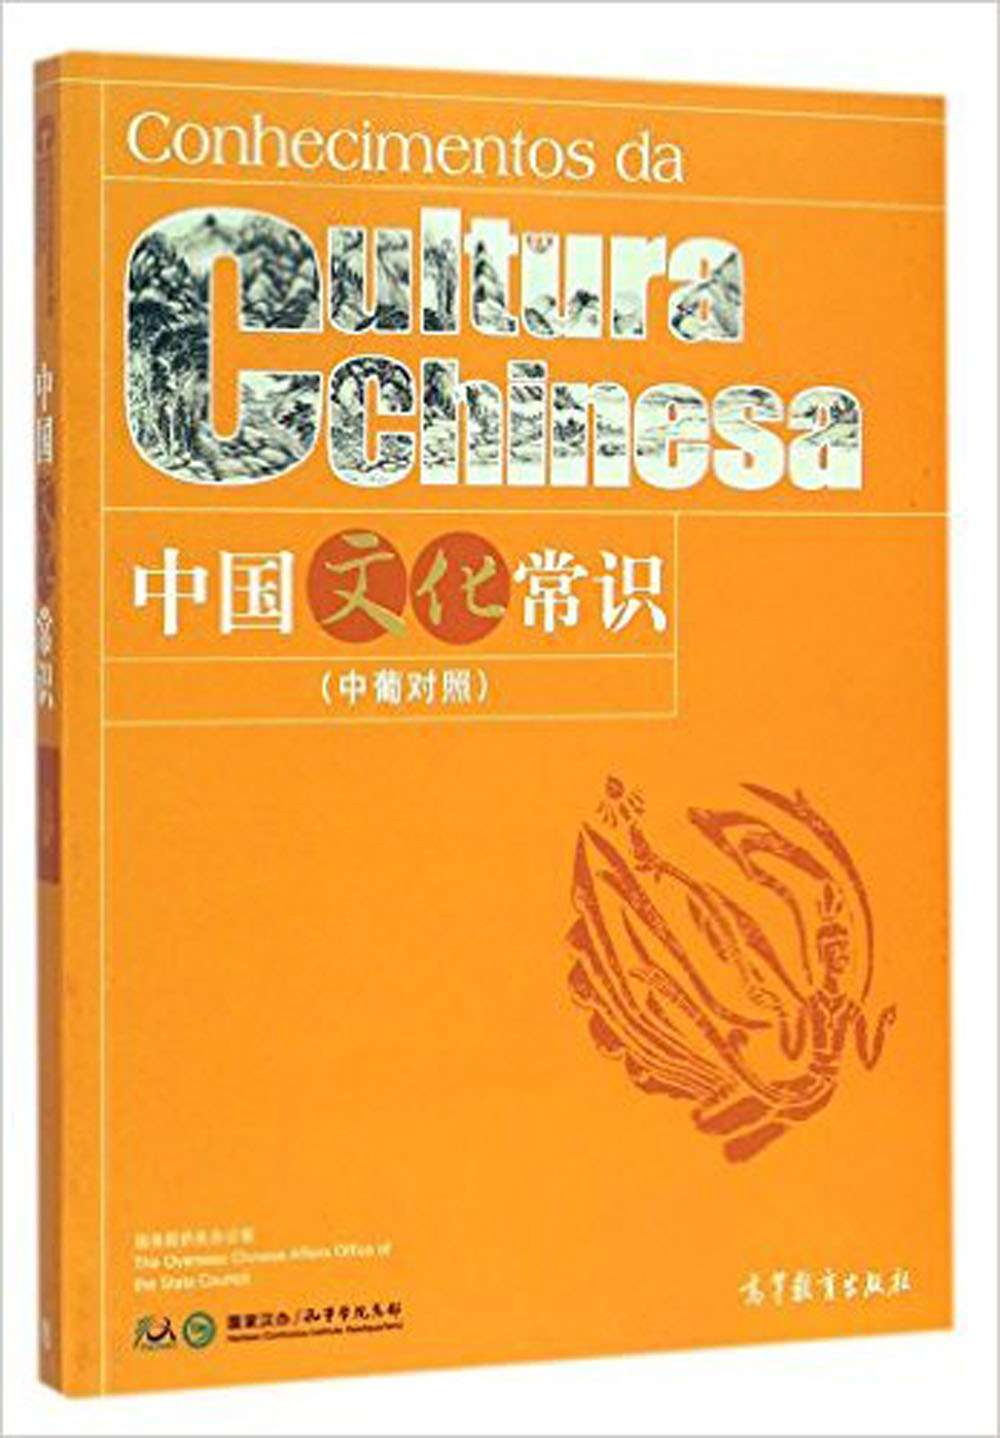 Common Knowledge about Chinese Culture (Language In Chinese and Portuguese) 281 Page for adult learn chinese culture демисезонные ботинки common projects obscure achilles mesh low grey page 2 page 3